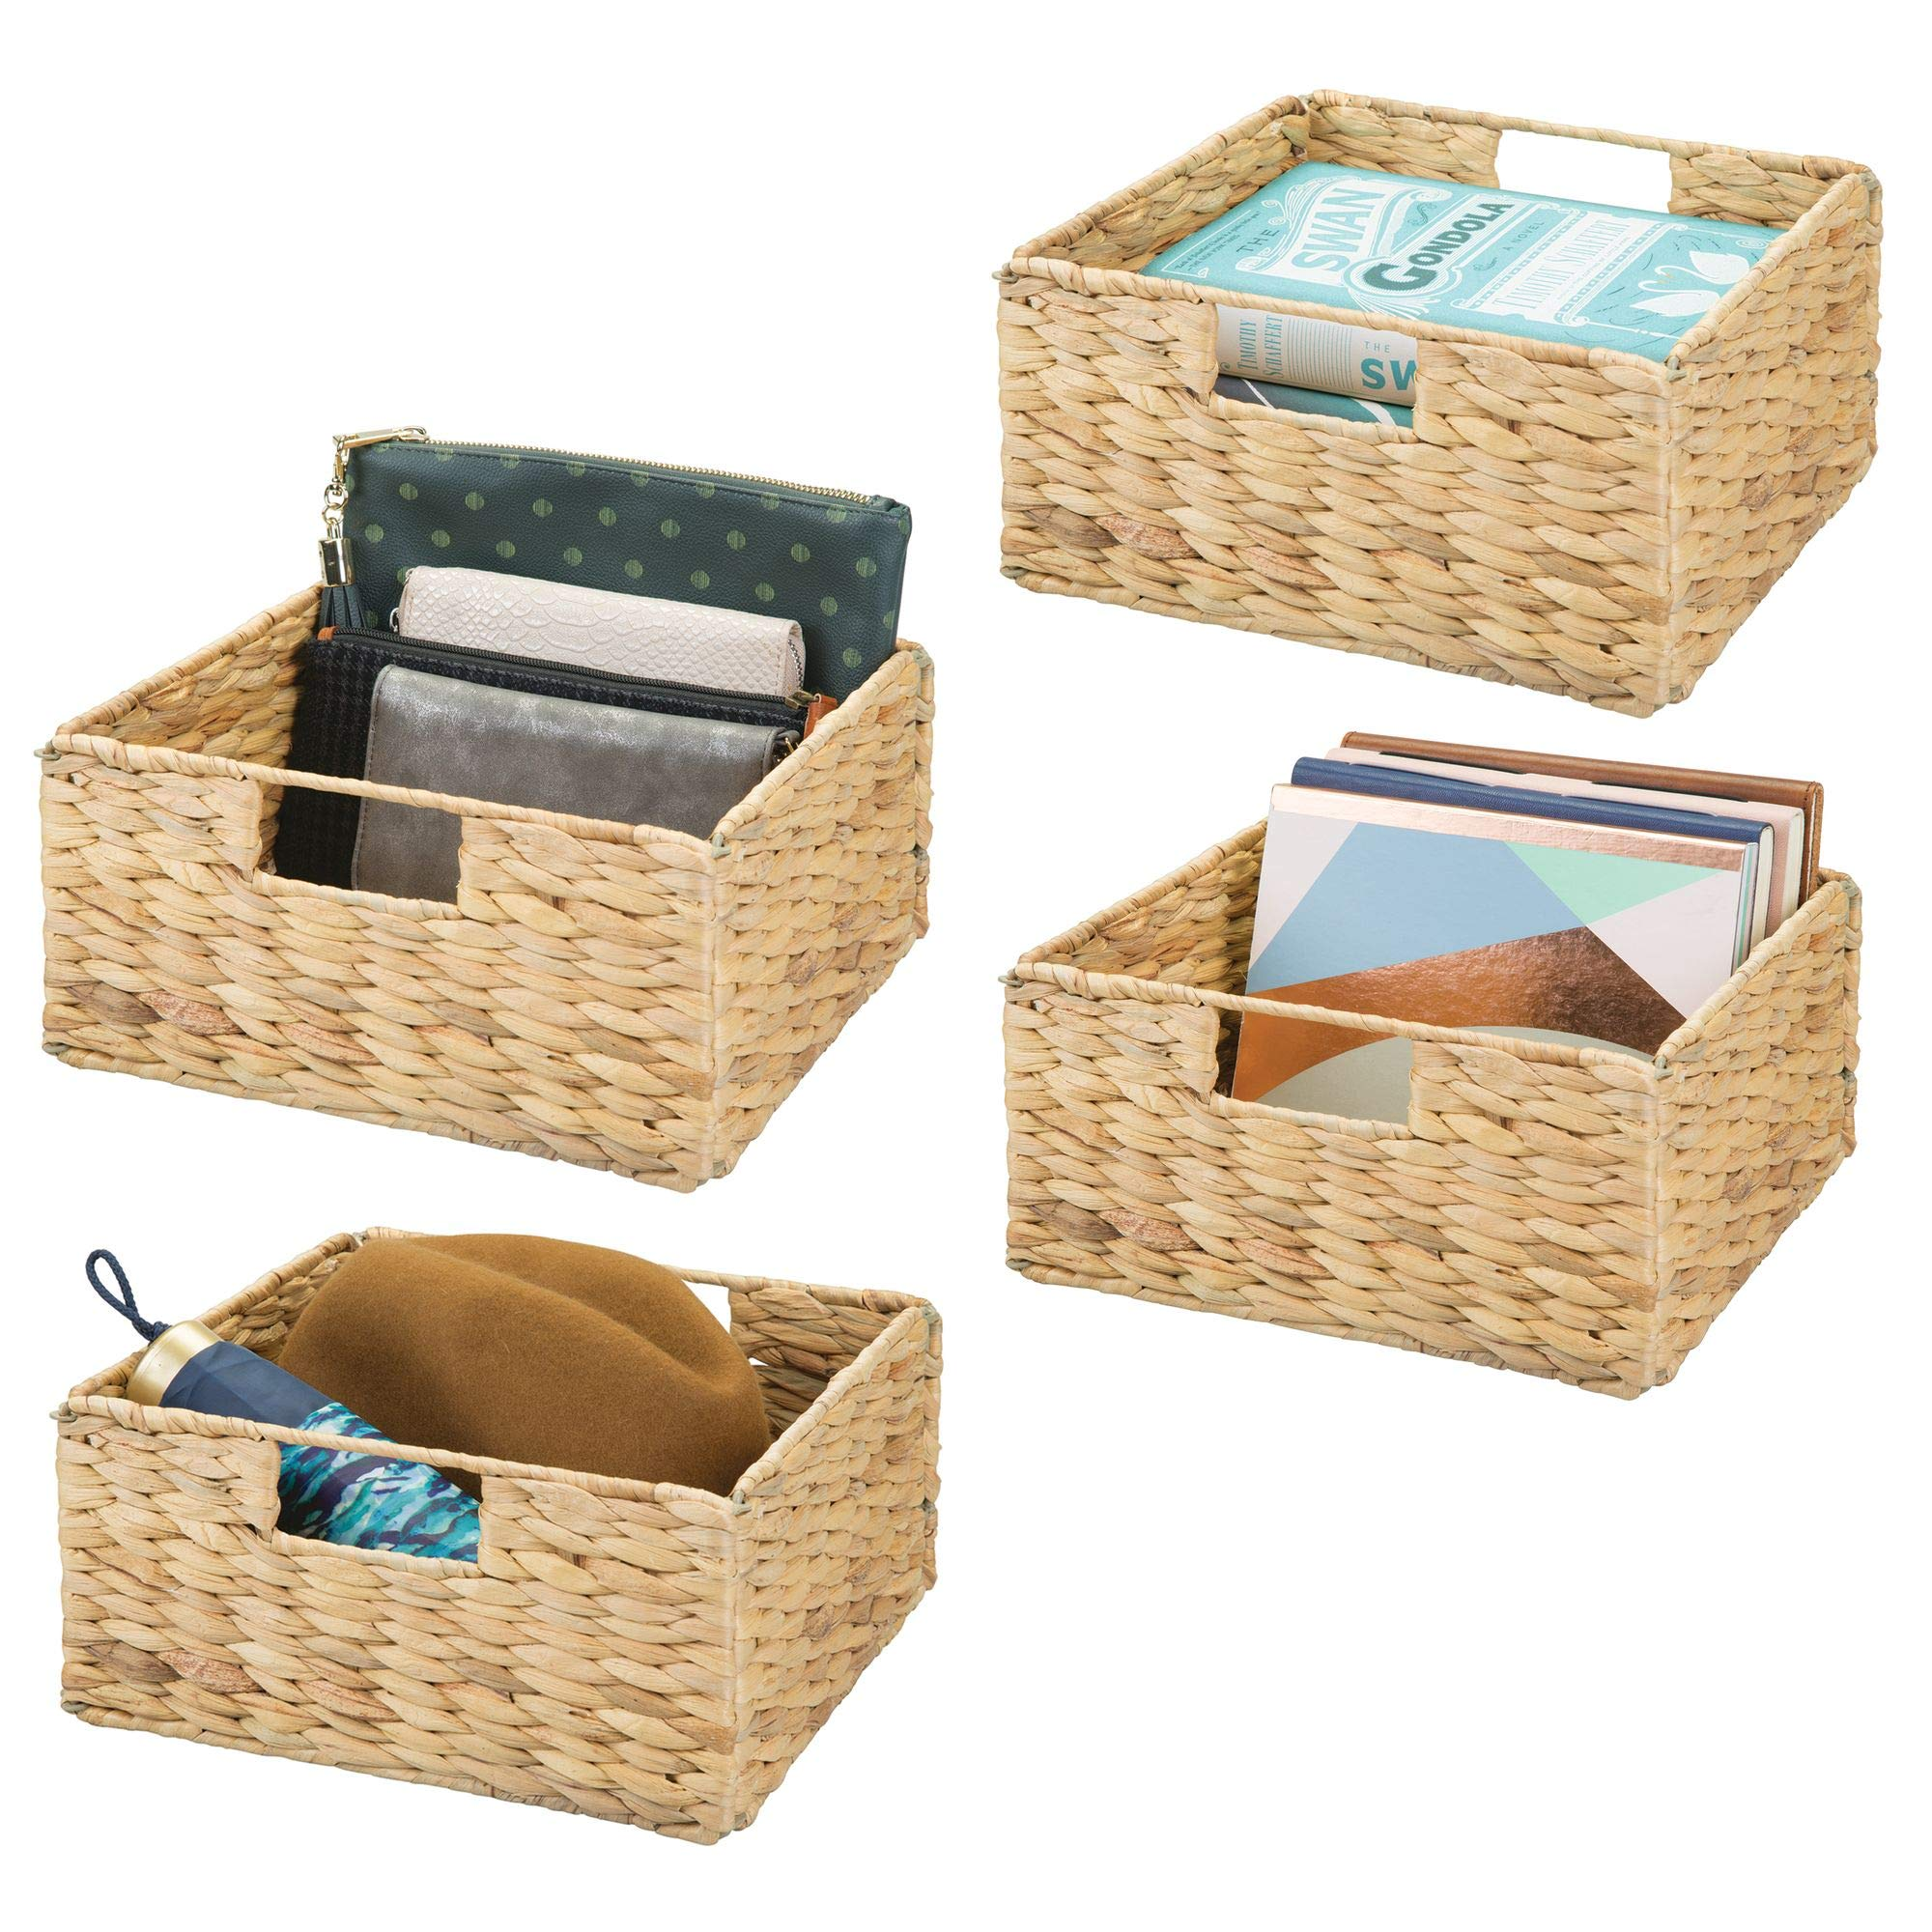 mDesign Natural Woven Hyacinth Closet Storage Organizer Bin - Half Height Cube - Handles, Collapsible, for Closet, Bedroom, Bathroom, Entryway, Office - 5.25'' High, 4 Pack, Steel Frame, Natural